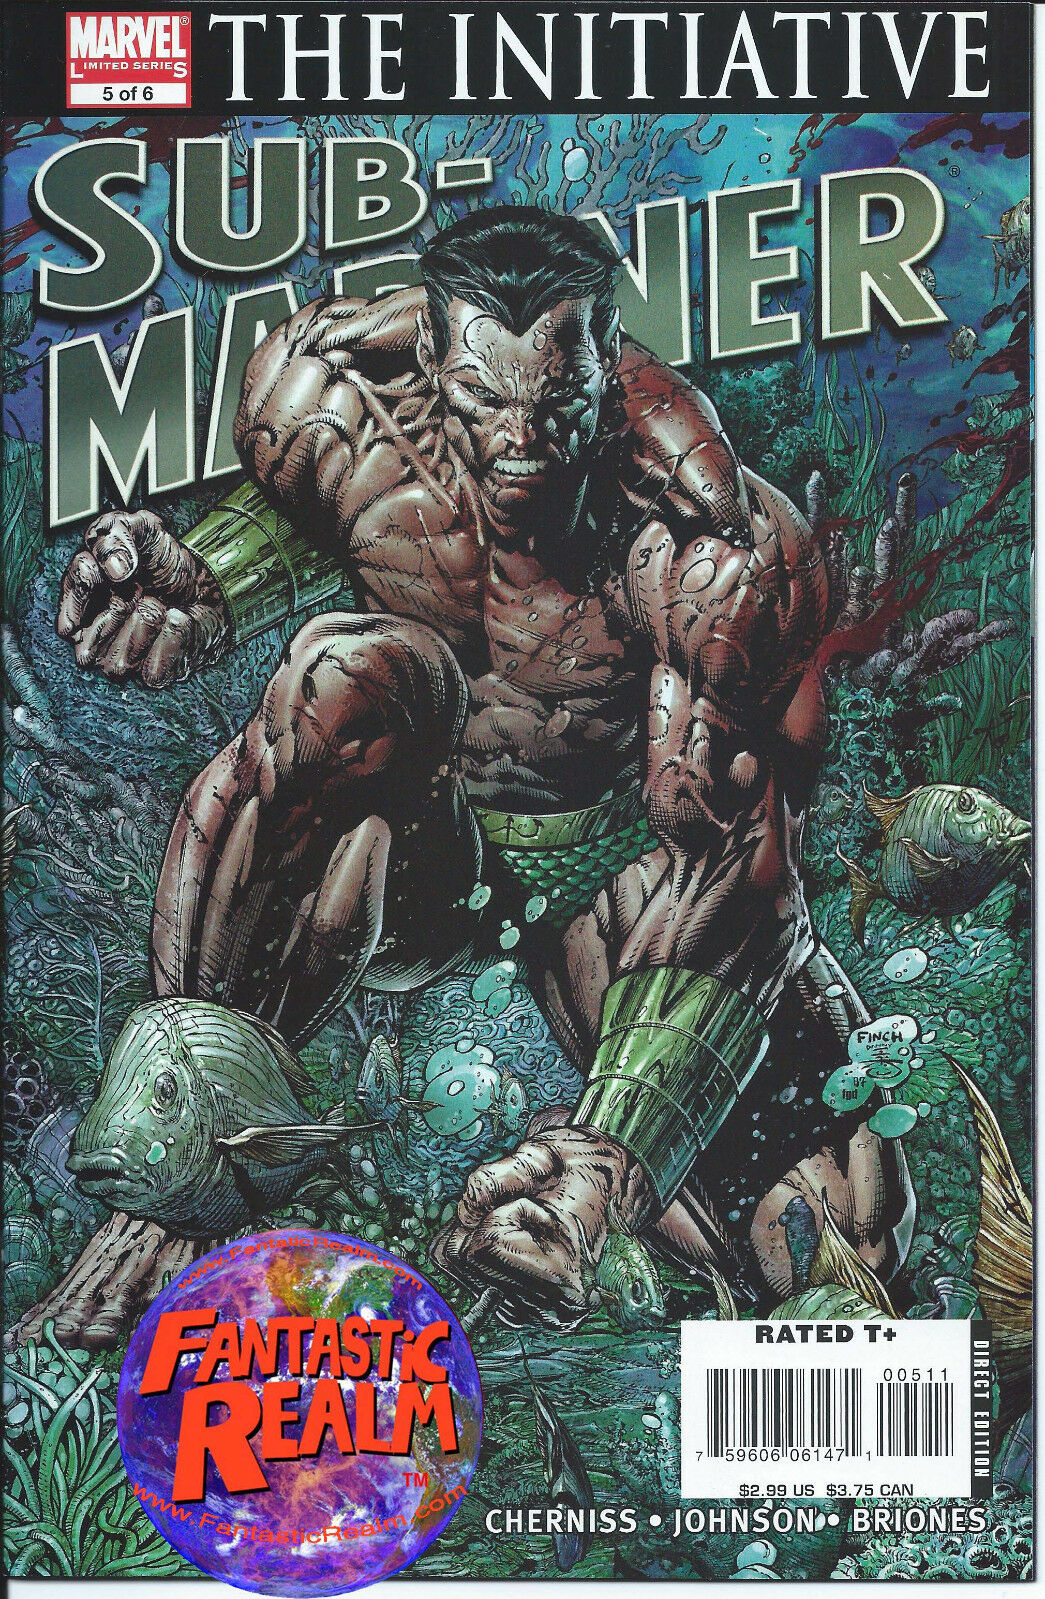 SUB-MARINER: THE INITIATIVE 5 OF 6 FINCH COVER MARVEL COMICS